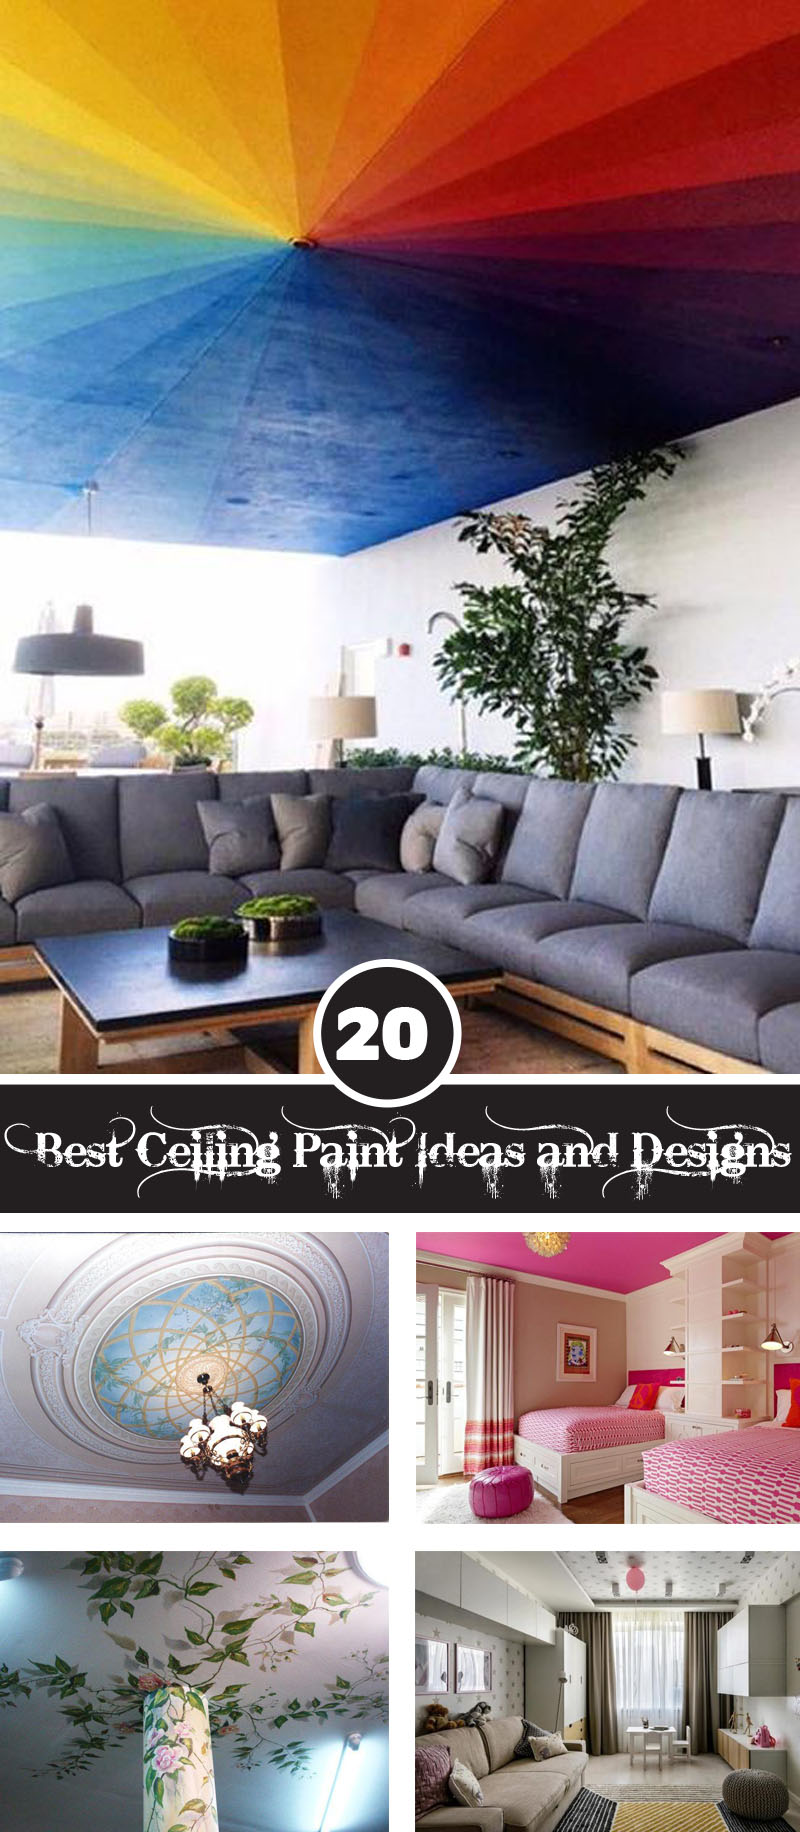 Ceiling Paint Ideas and Designs